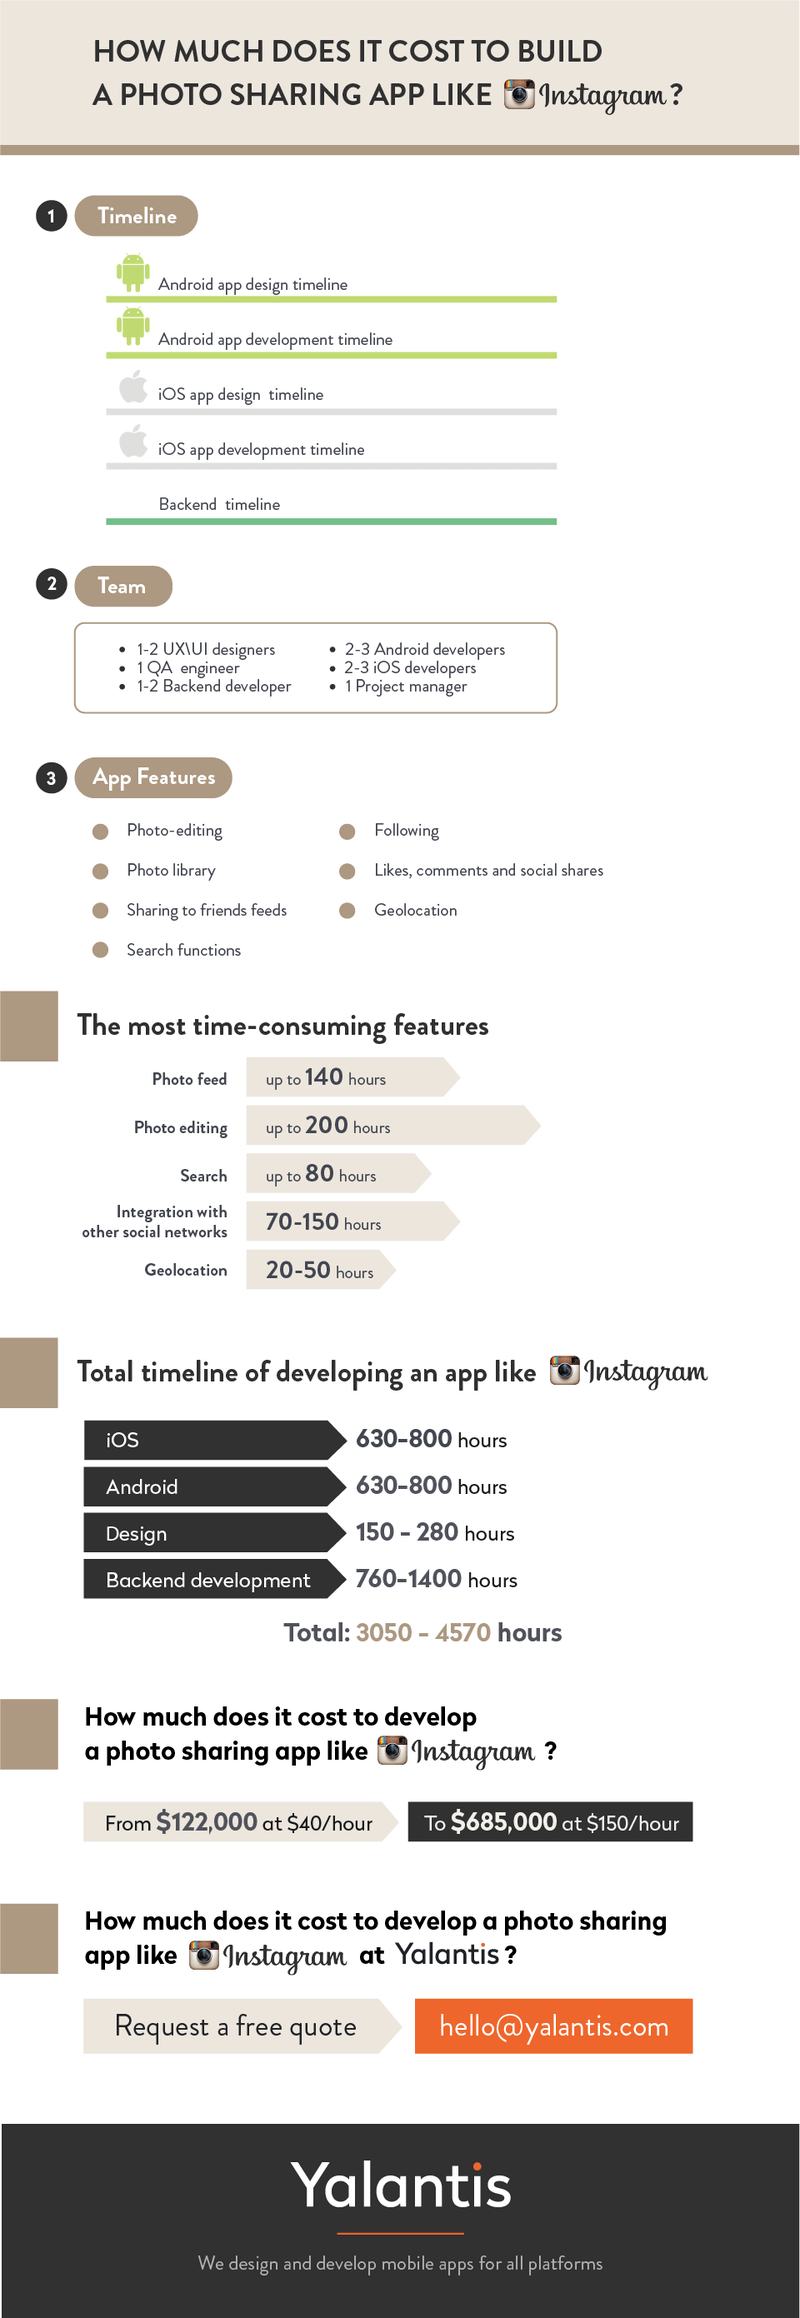 How much does it cost to develop Instagram?